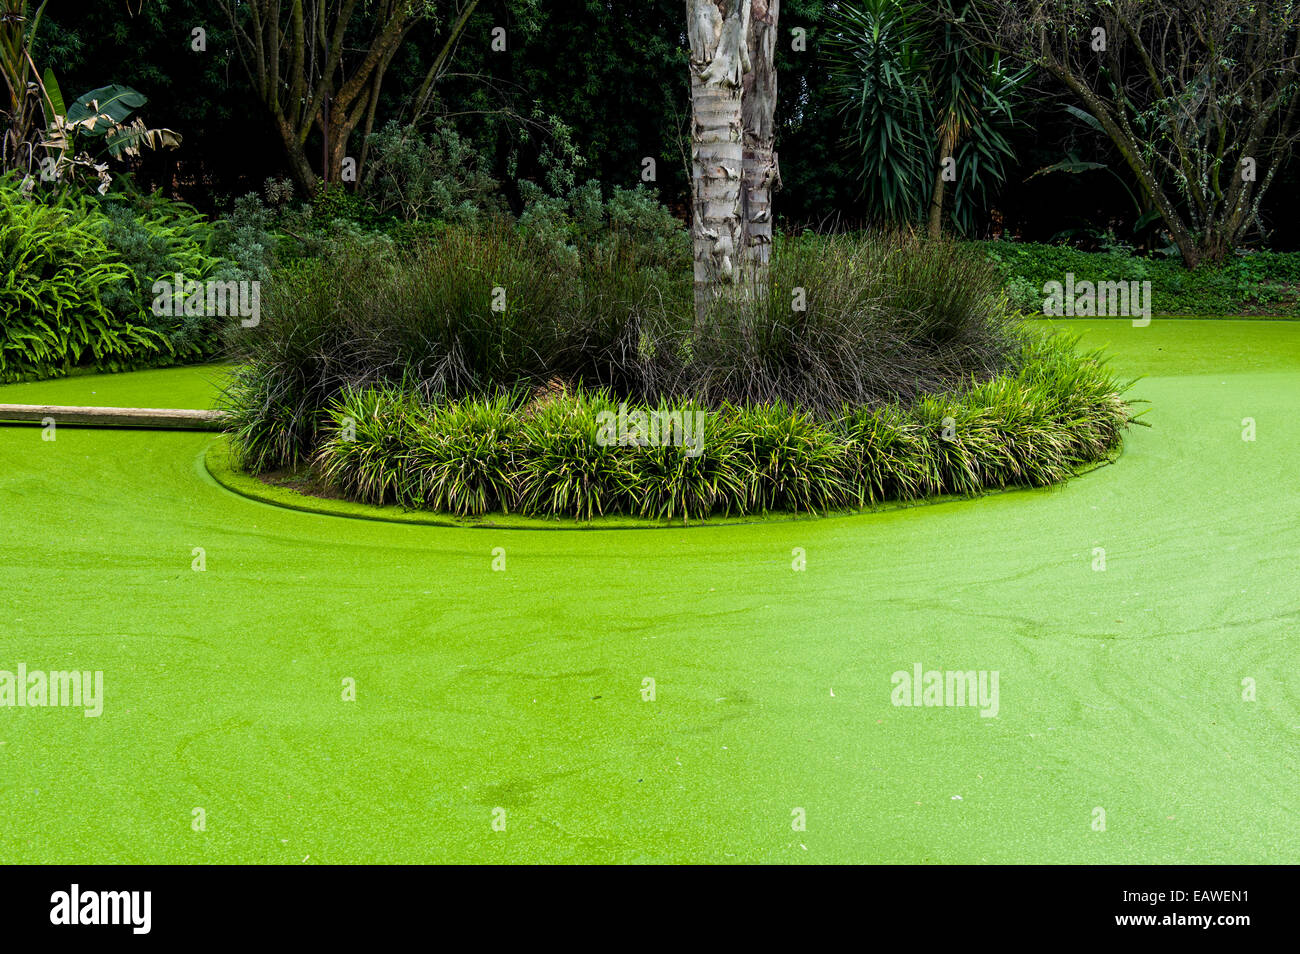 Aquatic Plants And Algae Cover The Water Surface Of A